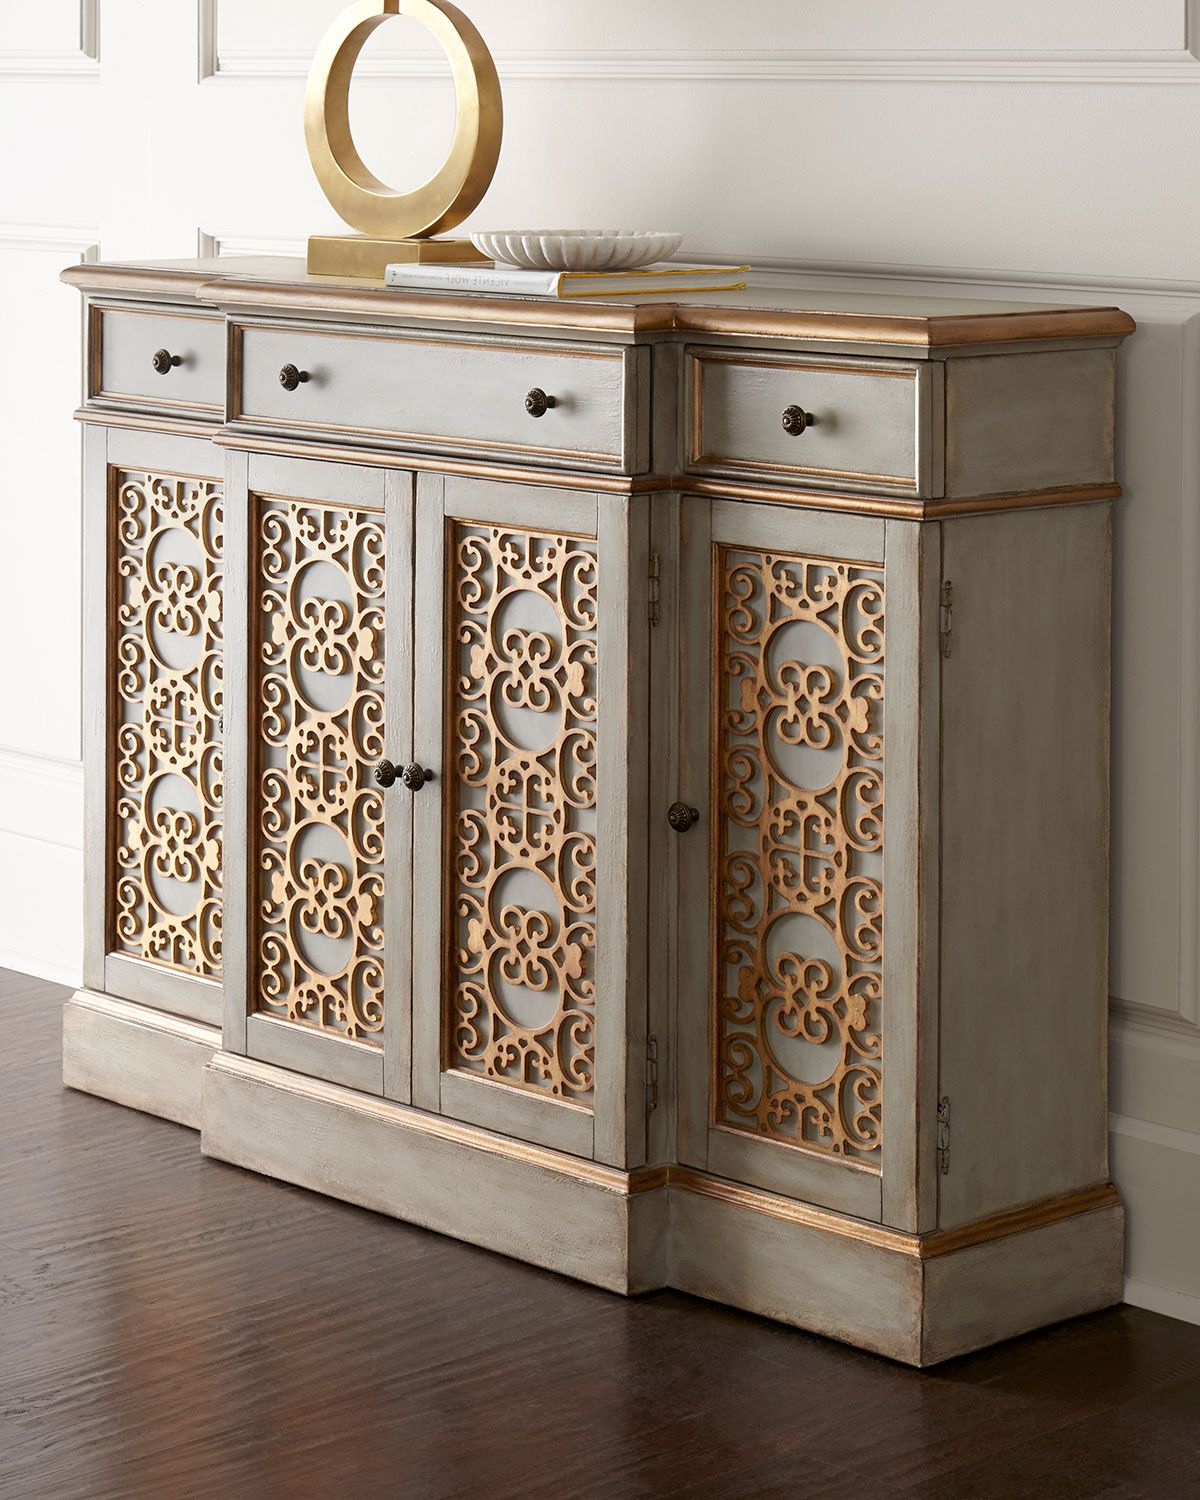 Stillwater Sideboards For 2020 Sideboard Features Intricate Doors Adorned With Scrolled (Gallery 8 of 20)